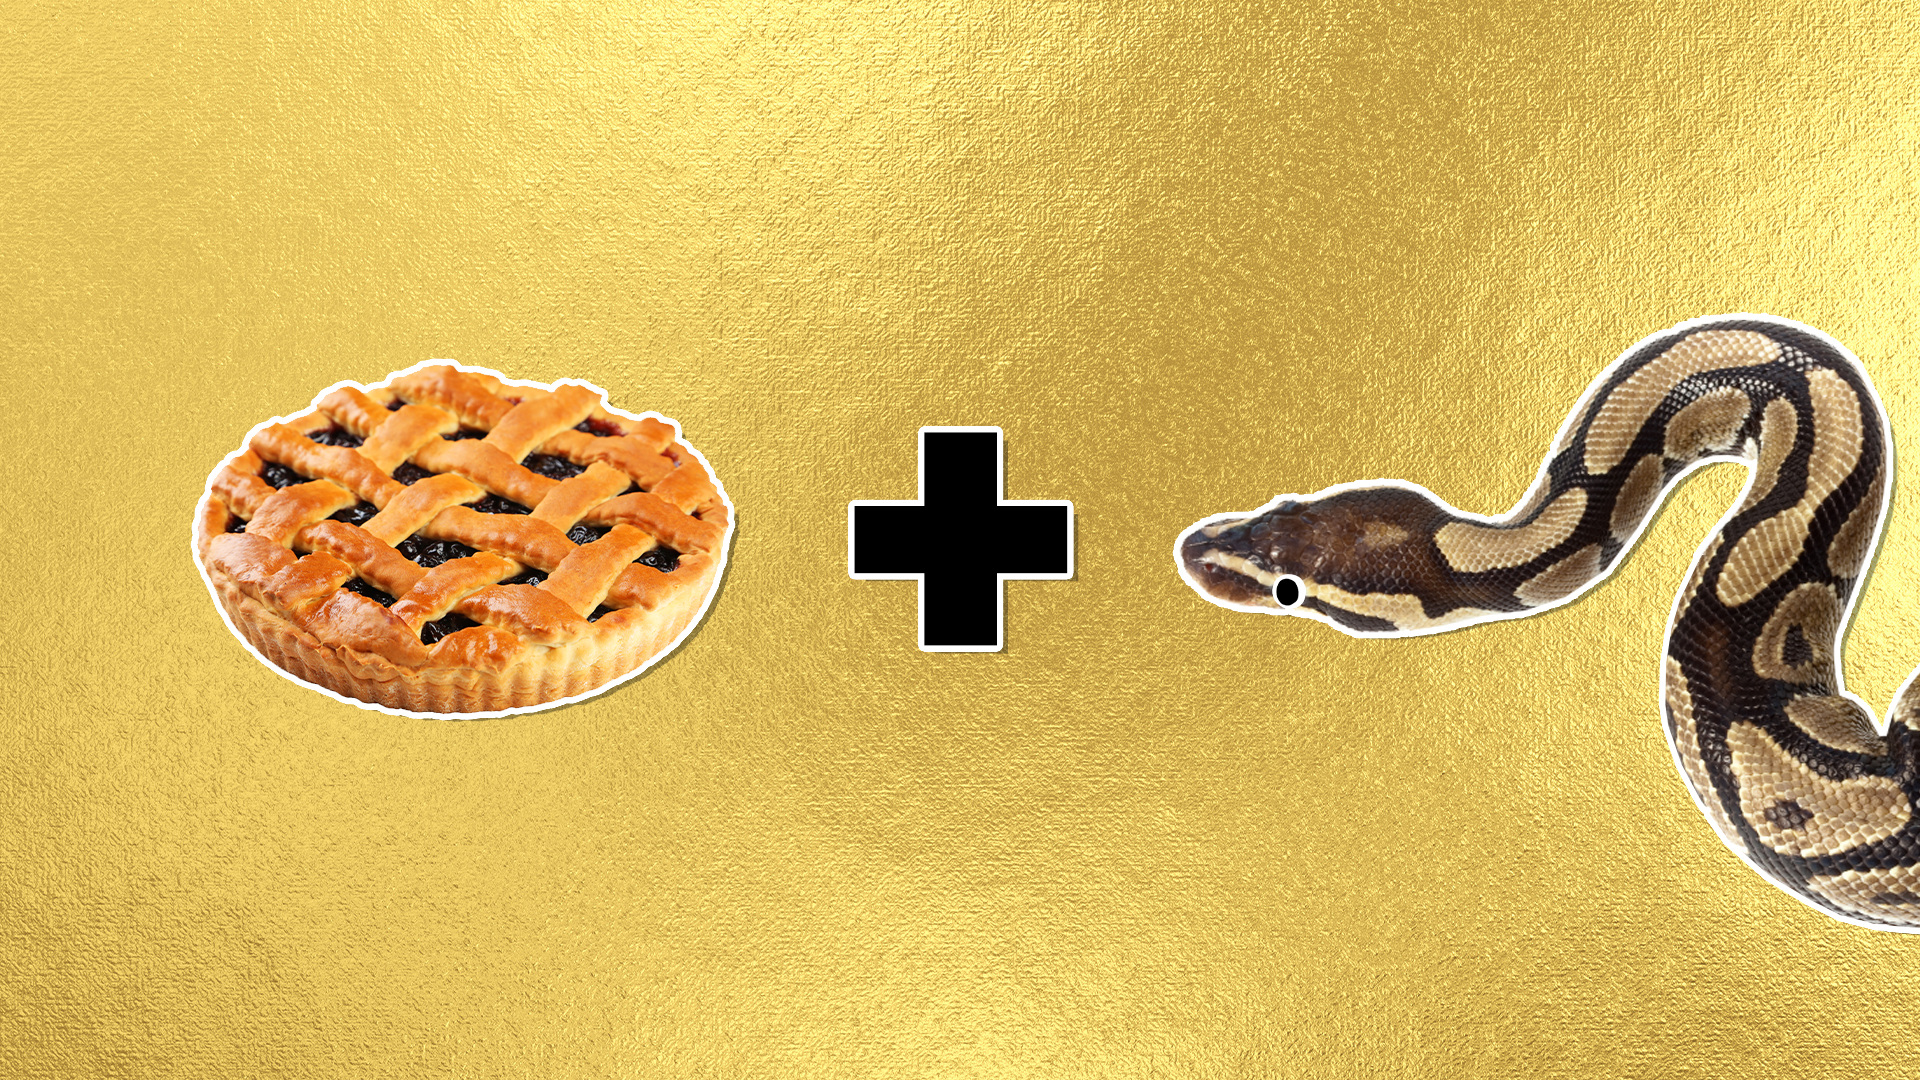 A pie and a snake